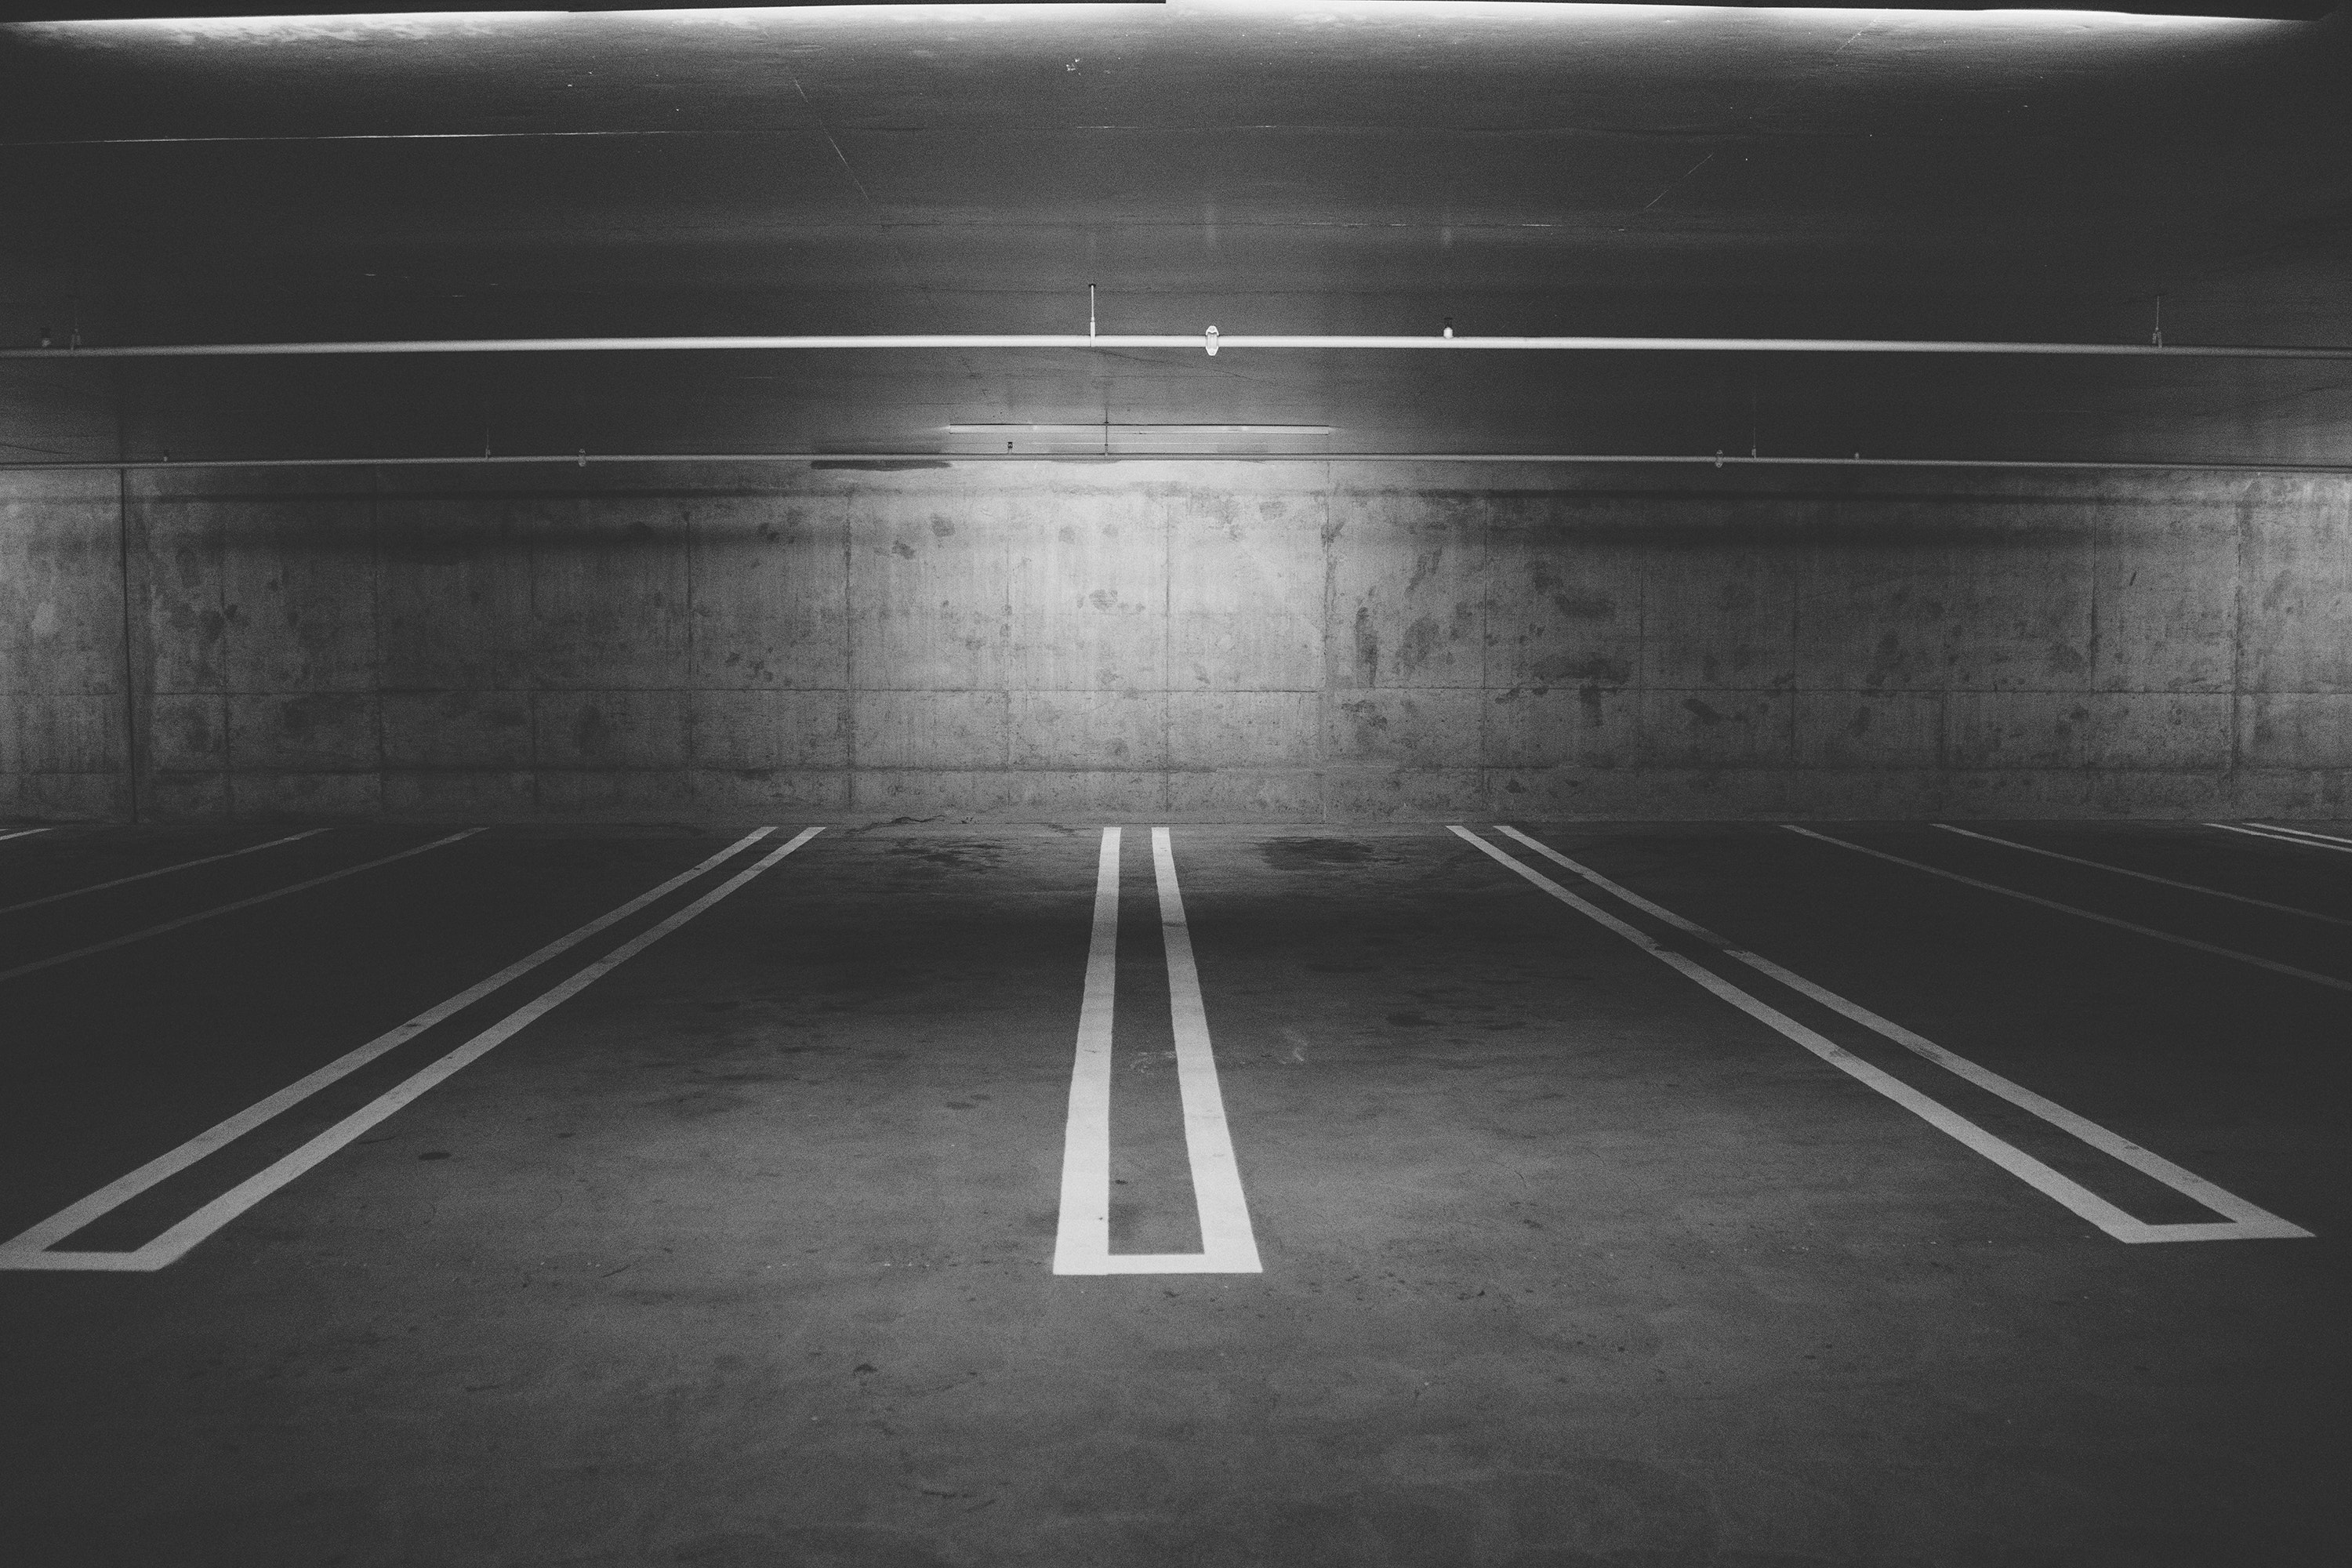 parking-parking-lot-underground-garage-2996.jpg